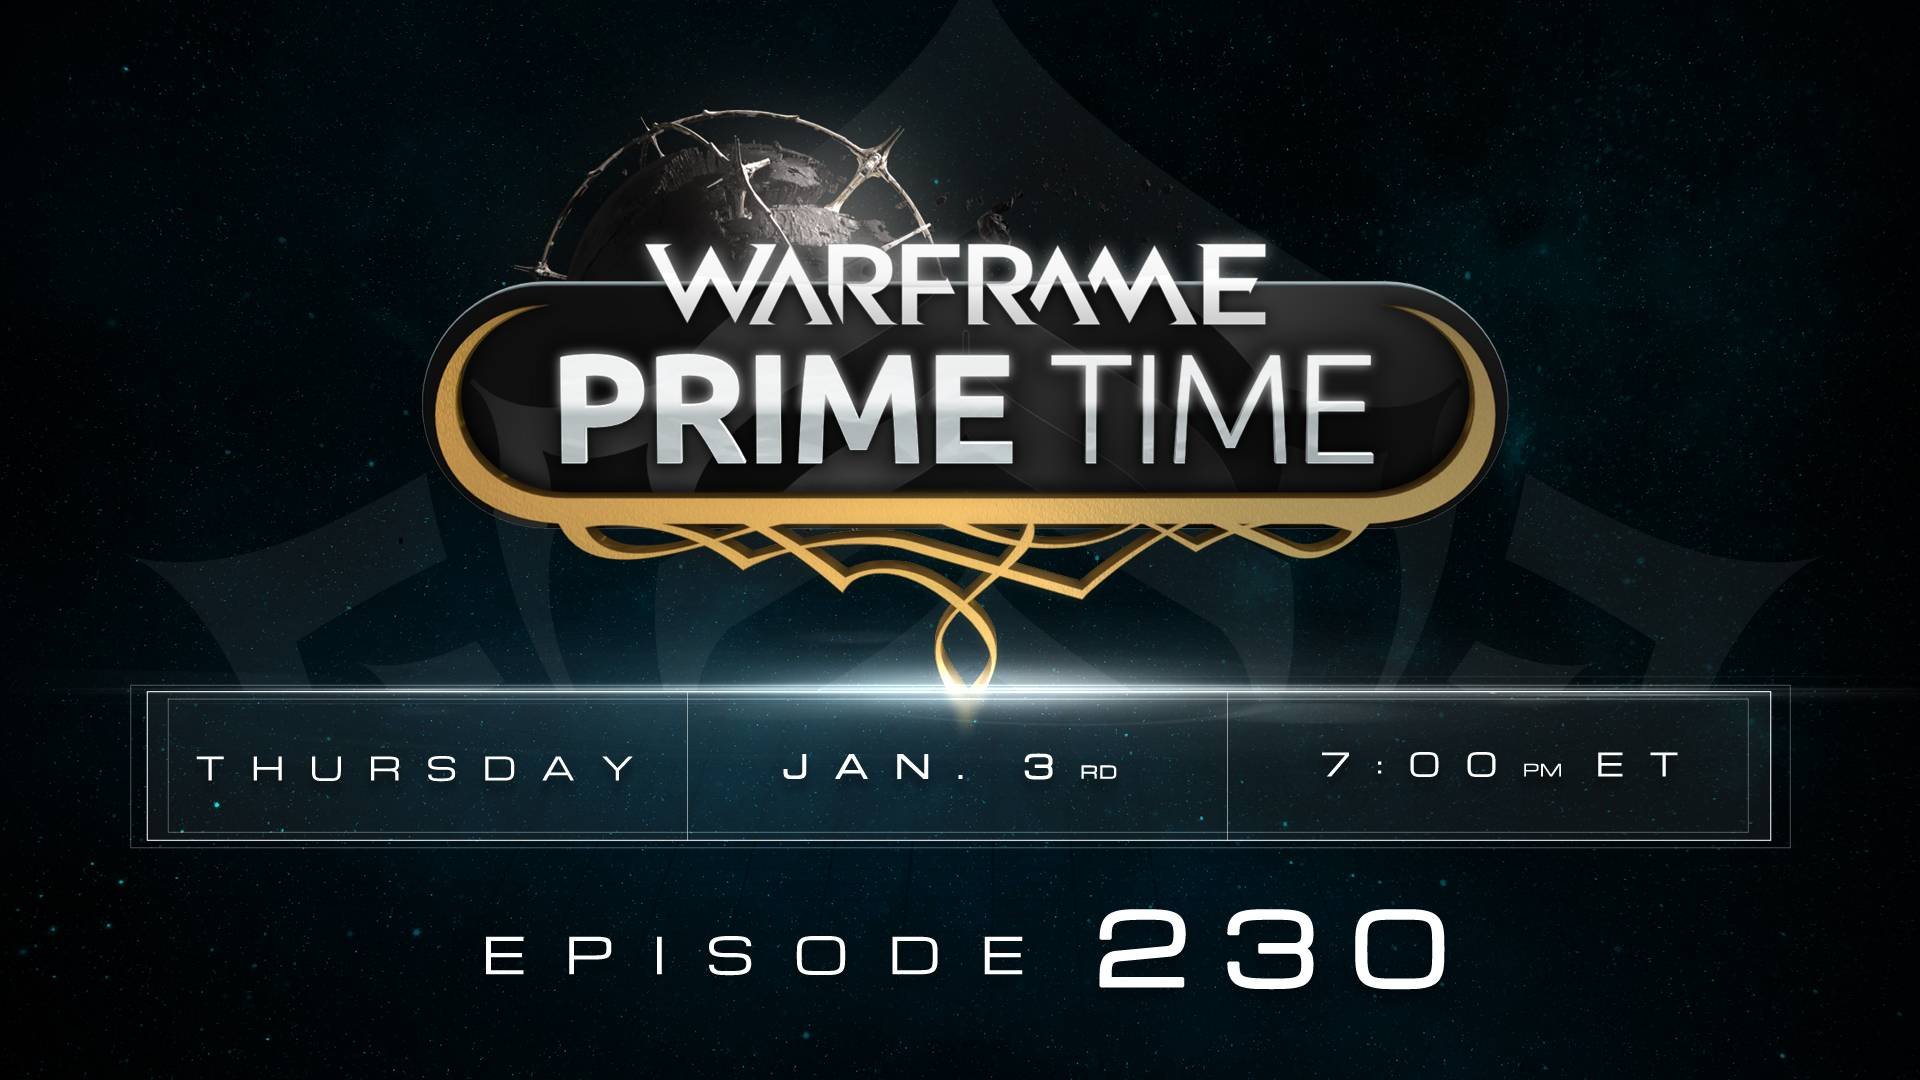 warframe prime time  230  tonight at 7pm et